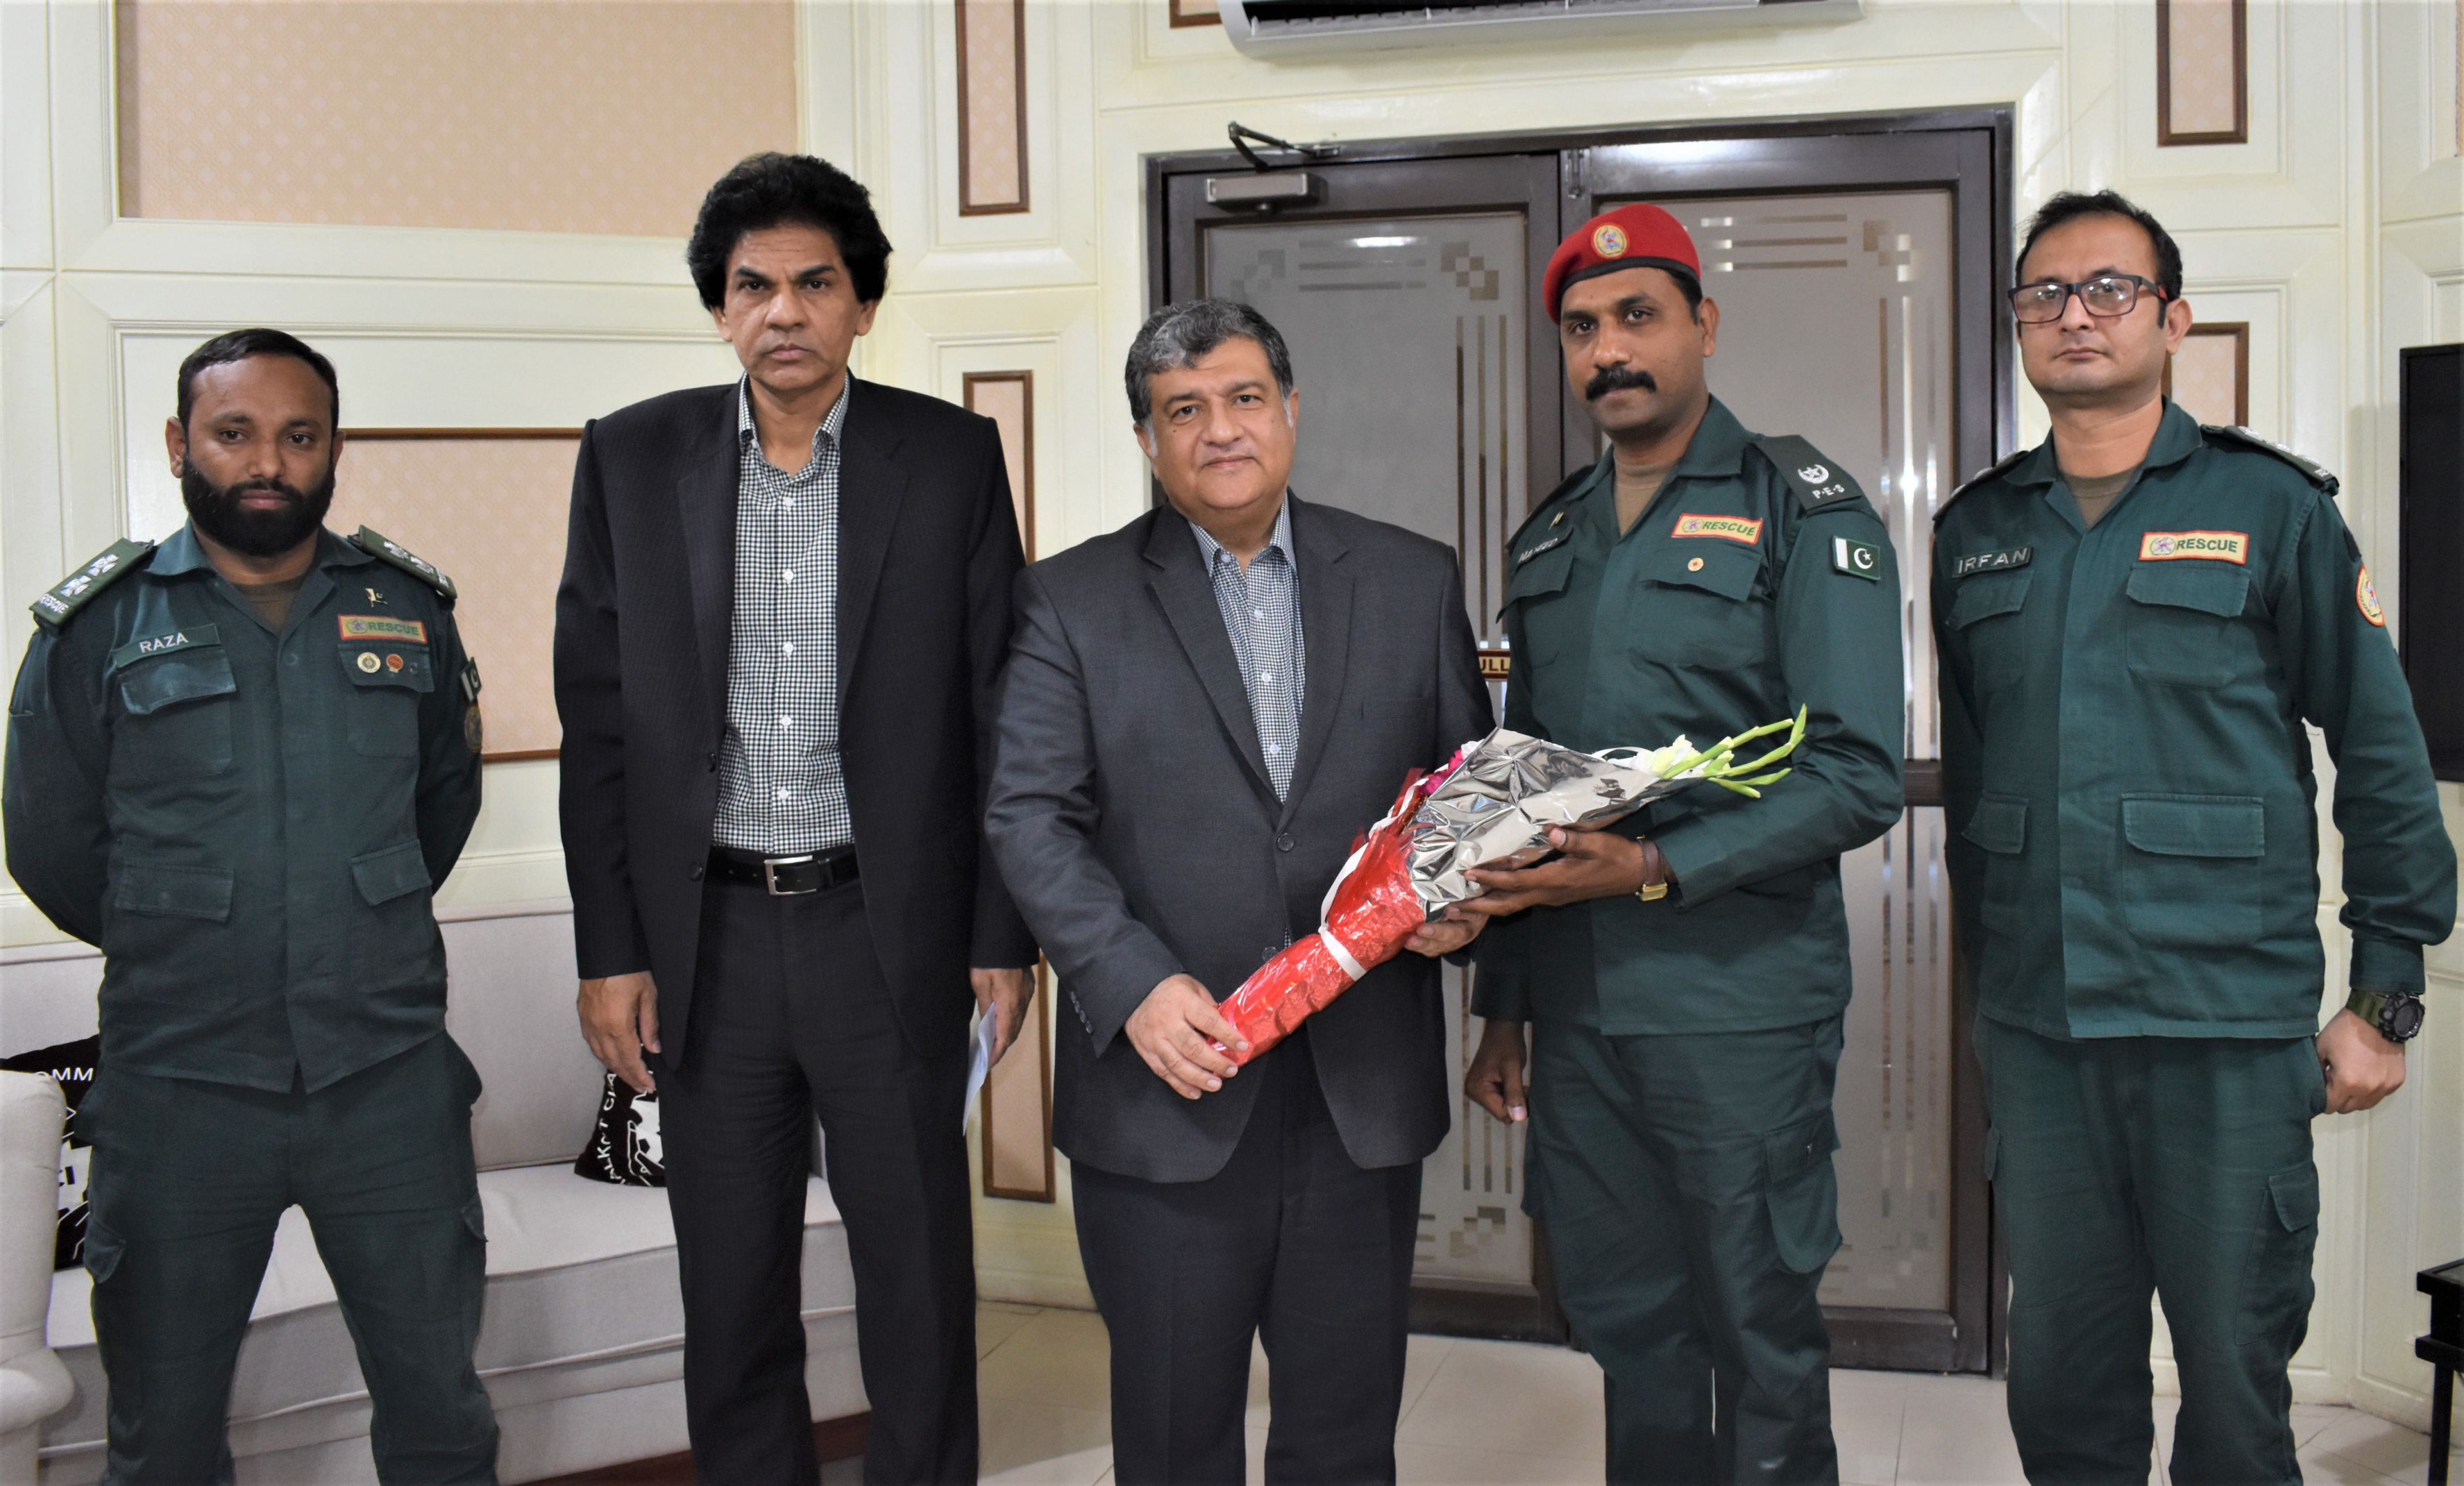 On October 27, 2021, A Delegation of The Punjab Emergency Service (Rescue 1122) met President, Sialkot Chamber of Commerce & Industry and elaborated their role and performance in professional management of emergencies such as road traffic crashes, medical emergencies, building collapse, fire explosions, flood and water rescue.  President SCCI appreciated the efforts of Rescue 1122 in facilitating hundreds of emergency victims in Sialkot through its Emergency Ambulance, Rescue & Fire services while maintaining its swift response and standards.